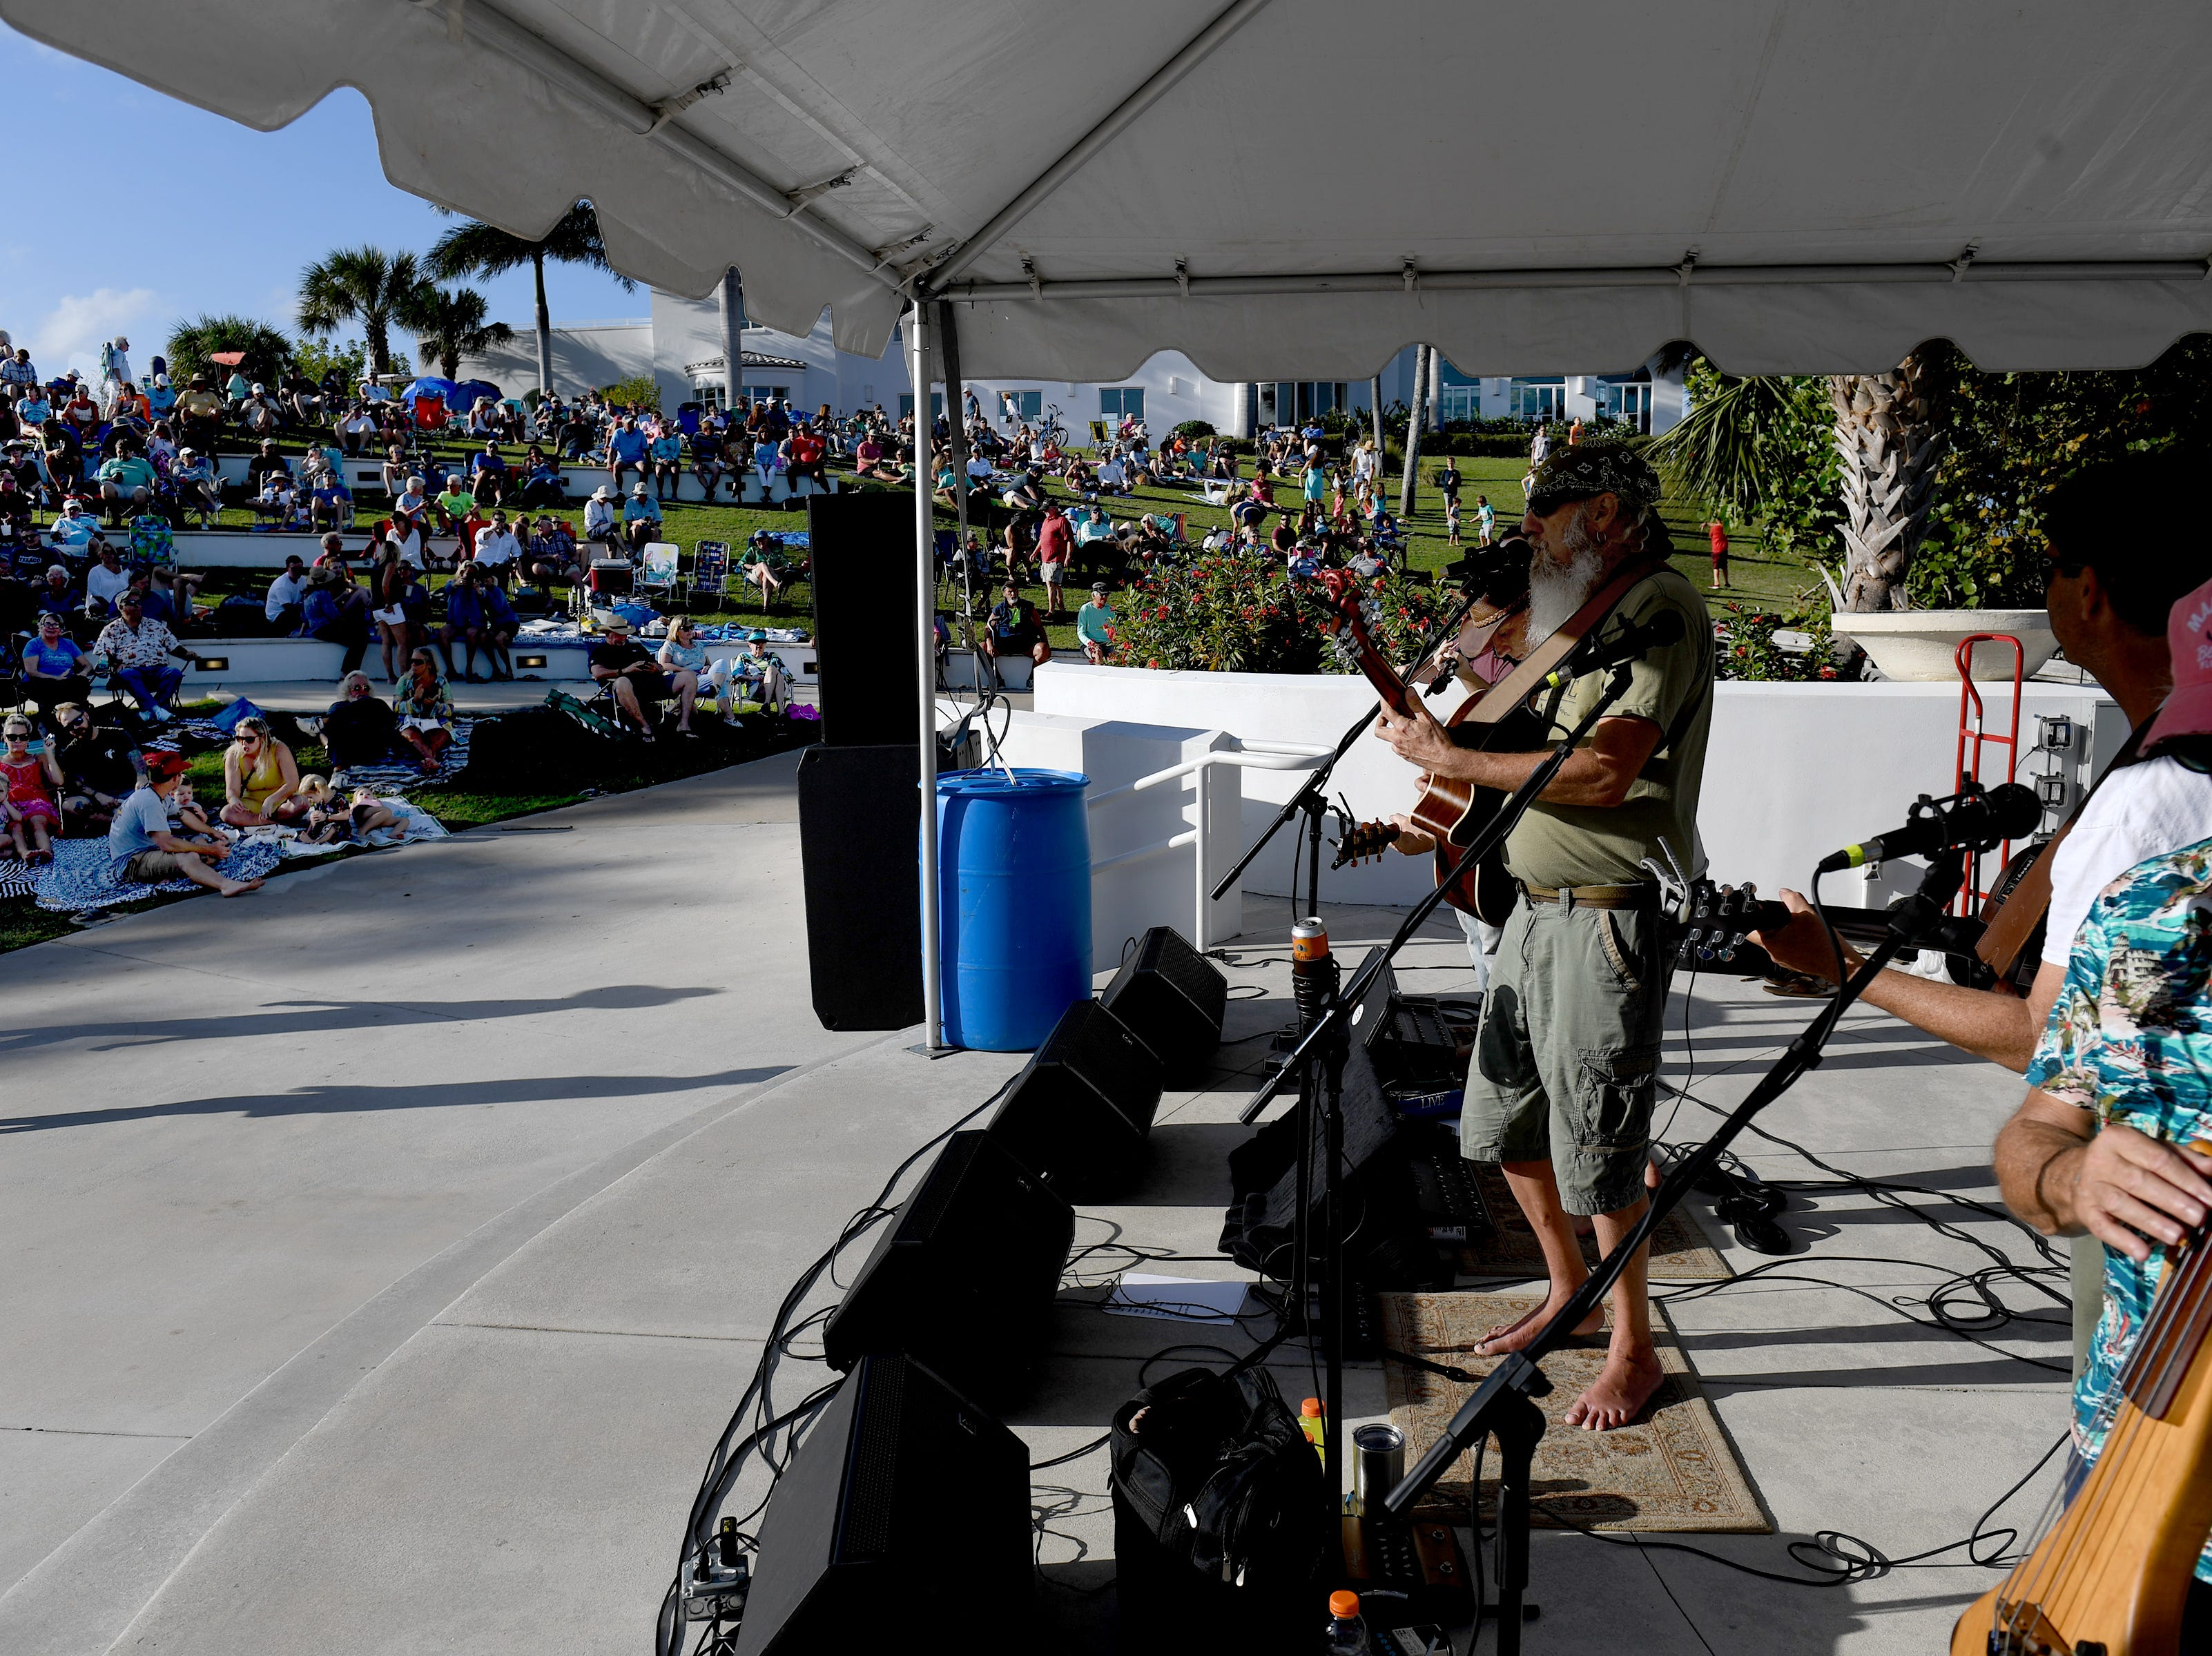 Hundreds of music fans filled the grounds at the Mansion at Tuckahoe to enjoy the music by the String Assassins, along with food, beverages, and kids activities during the Martin County Parks and Recreation's Concert Series at on the stage at the Mansion at Tuckahoe next to Riverside Park on Sunday, Feb. 10, 2019, in Jensen Beach.